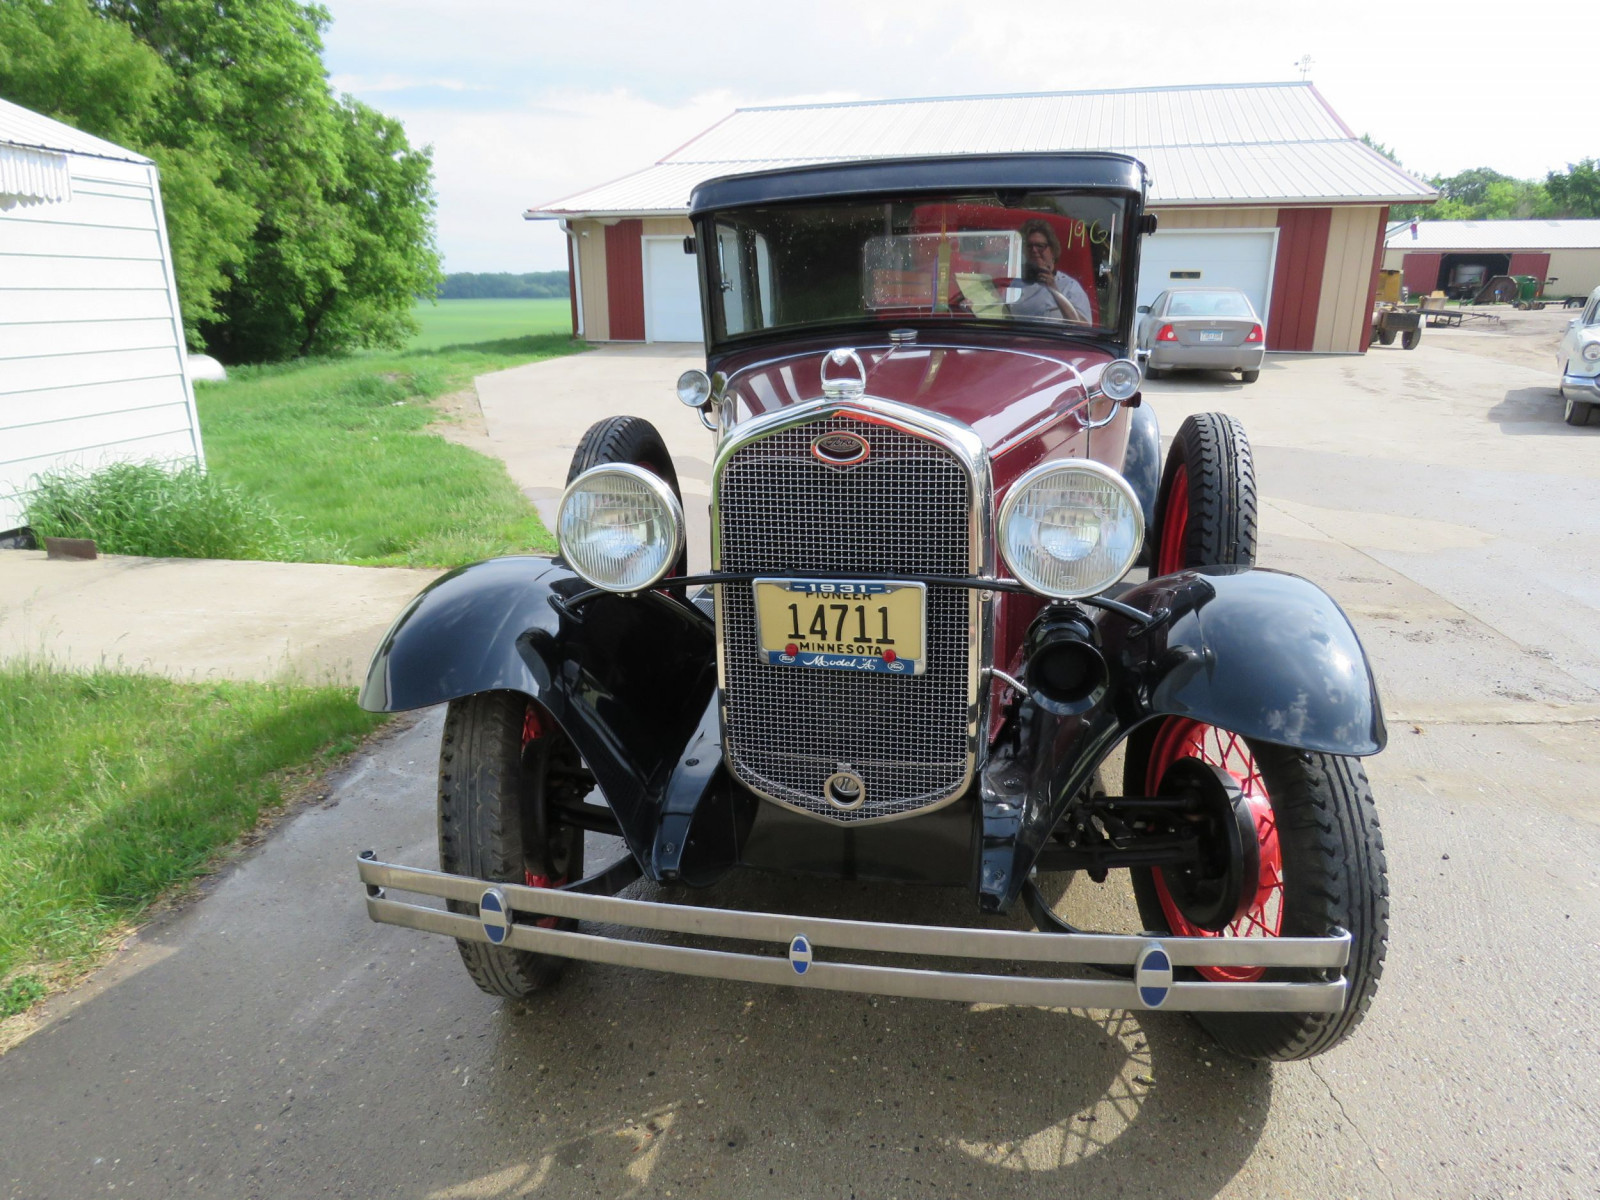 1931 Ford Model A 5 Window Rumble Seat Coupe - Image 2